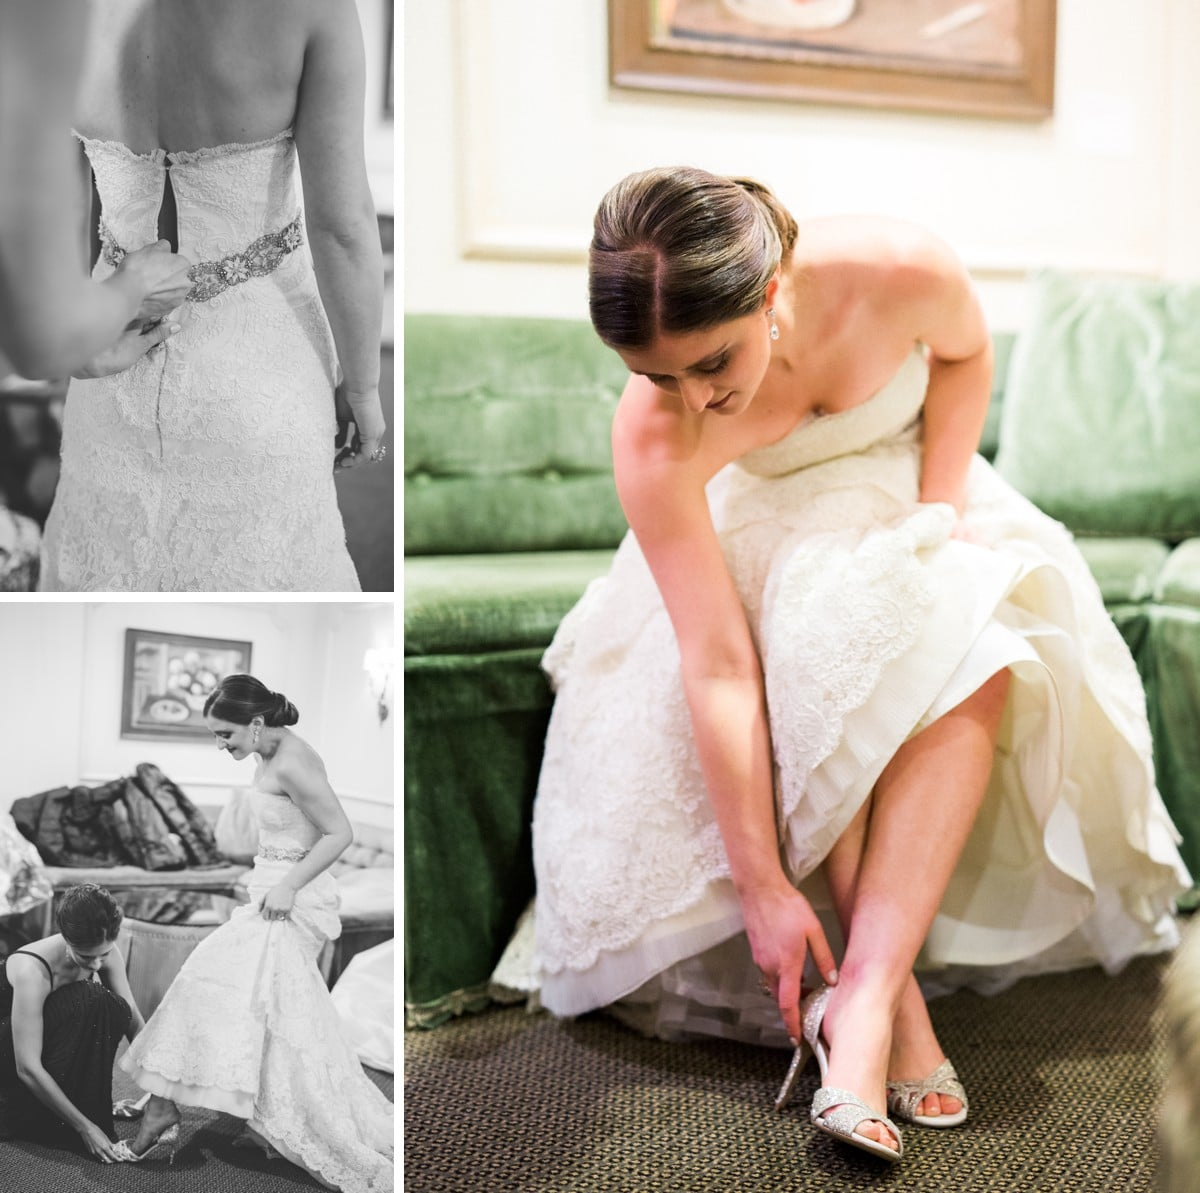 Getting Ready Shots for Wedding, St. Louis Wedding Photographer